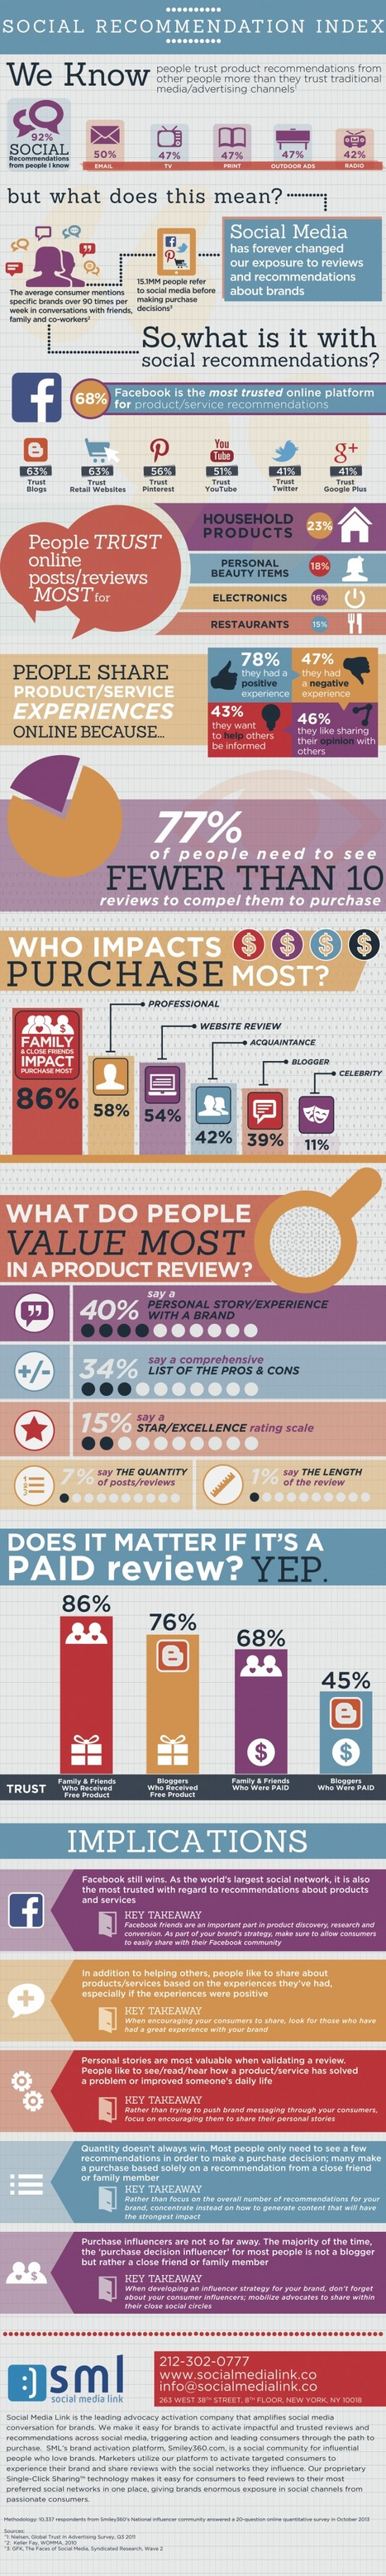 Consumers Trust Social Media Recommendations (And Facebook Most Of All) [INFOGRAPHIC] - AllTwitter | Social Media | Scoop.it